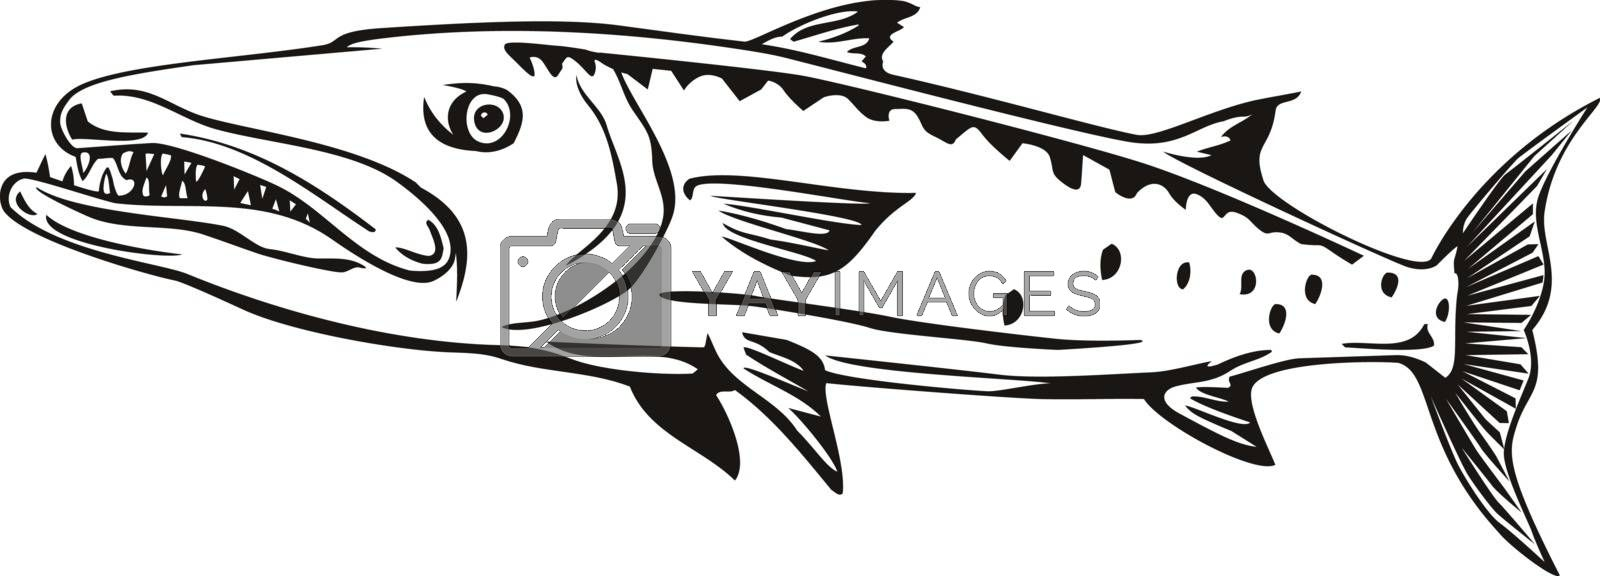 Retro style illustration of a barracuda or Sphyraena barracuda, a large, predatory saltwater ray-finned fish of the genus Sphyraenapredatory, swimming viewed from side on isolated background done in black and white.